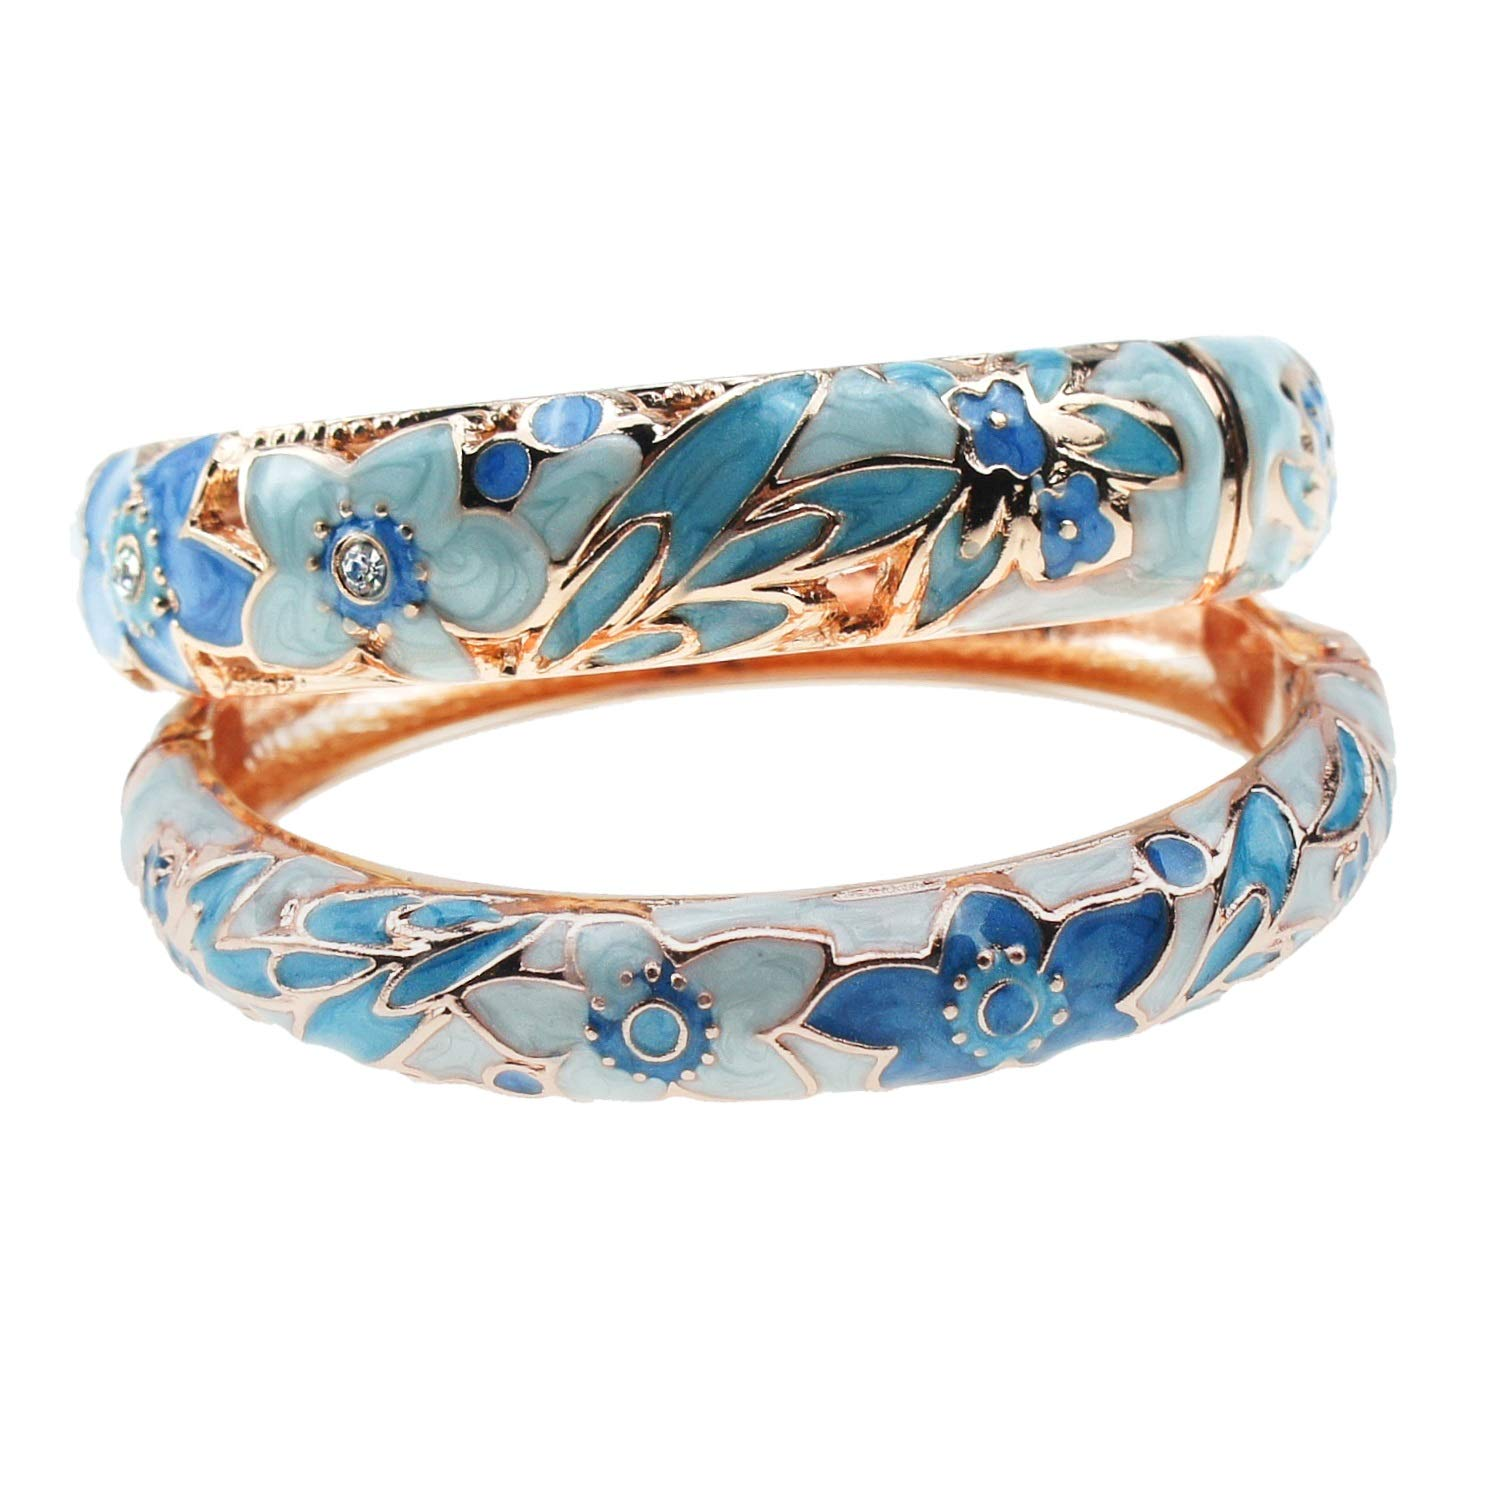 UJOY Vintage Jewelry Cloisonne Handcrafted Enameled Gorgeous Rhinestone Gold Hinged Cuff Bracelet Bangles Gifts 88A12